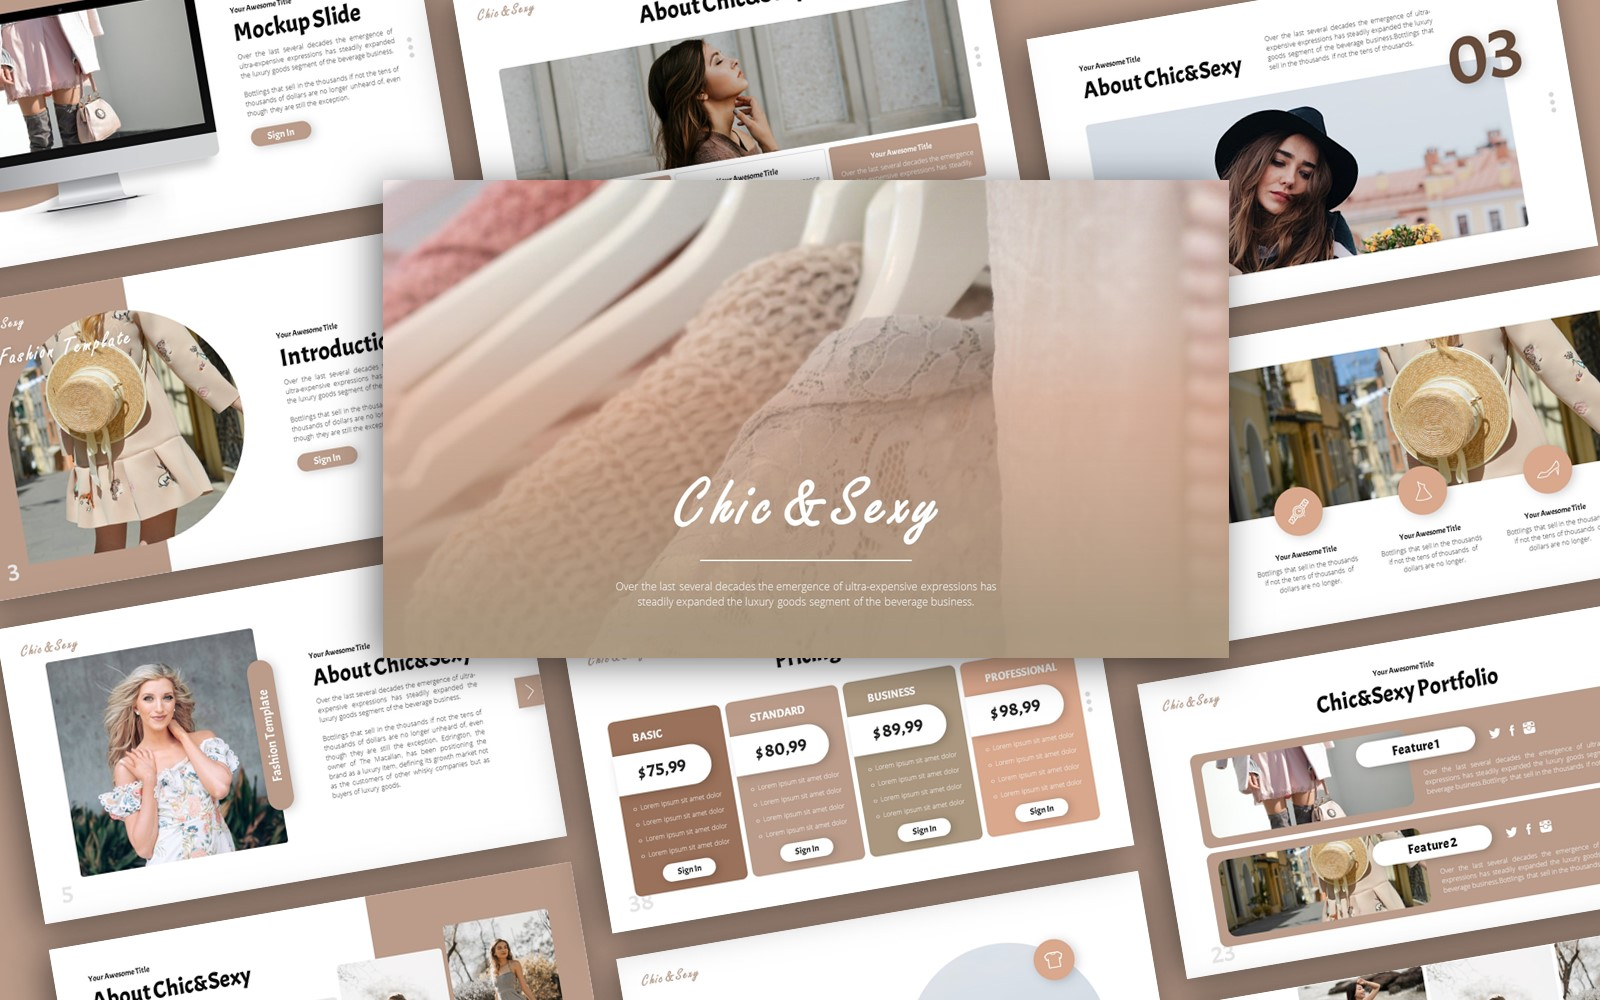 Chic&Sexy Fashion Presentation PowerPoint Template